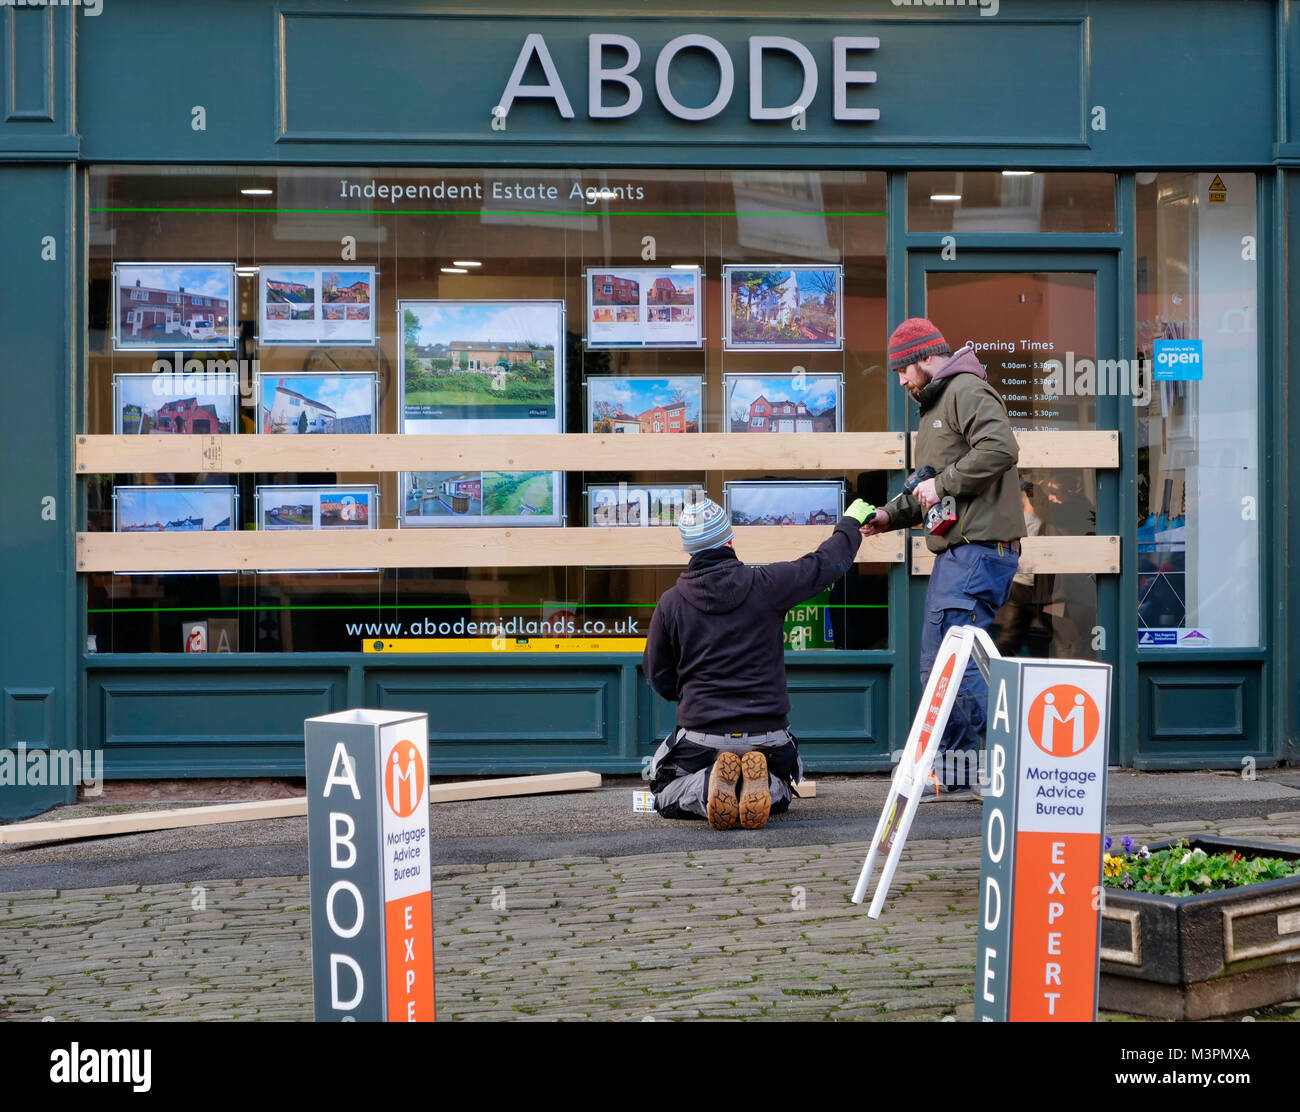 Ashbourne, UK. 12th February, 2018. All boarded up. Ashbourne town centre shop windows are boarded up for the start - Stock Image